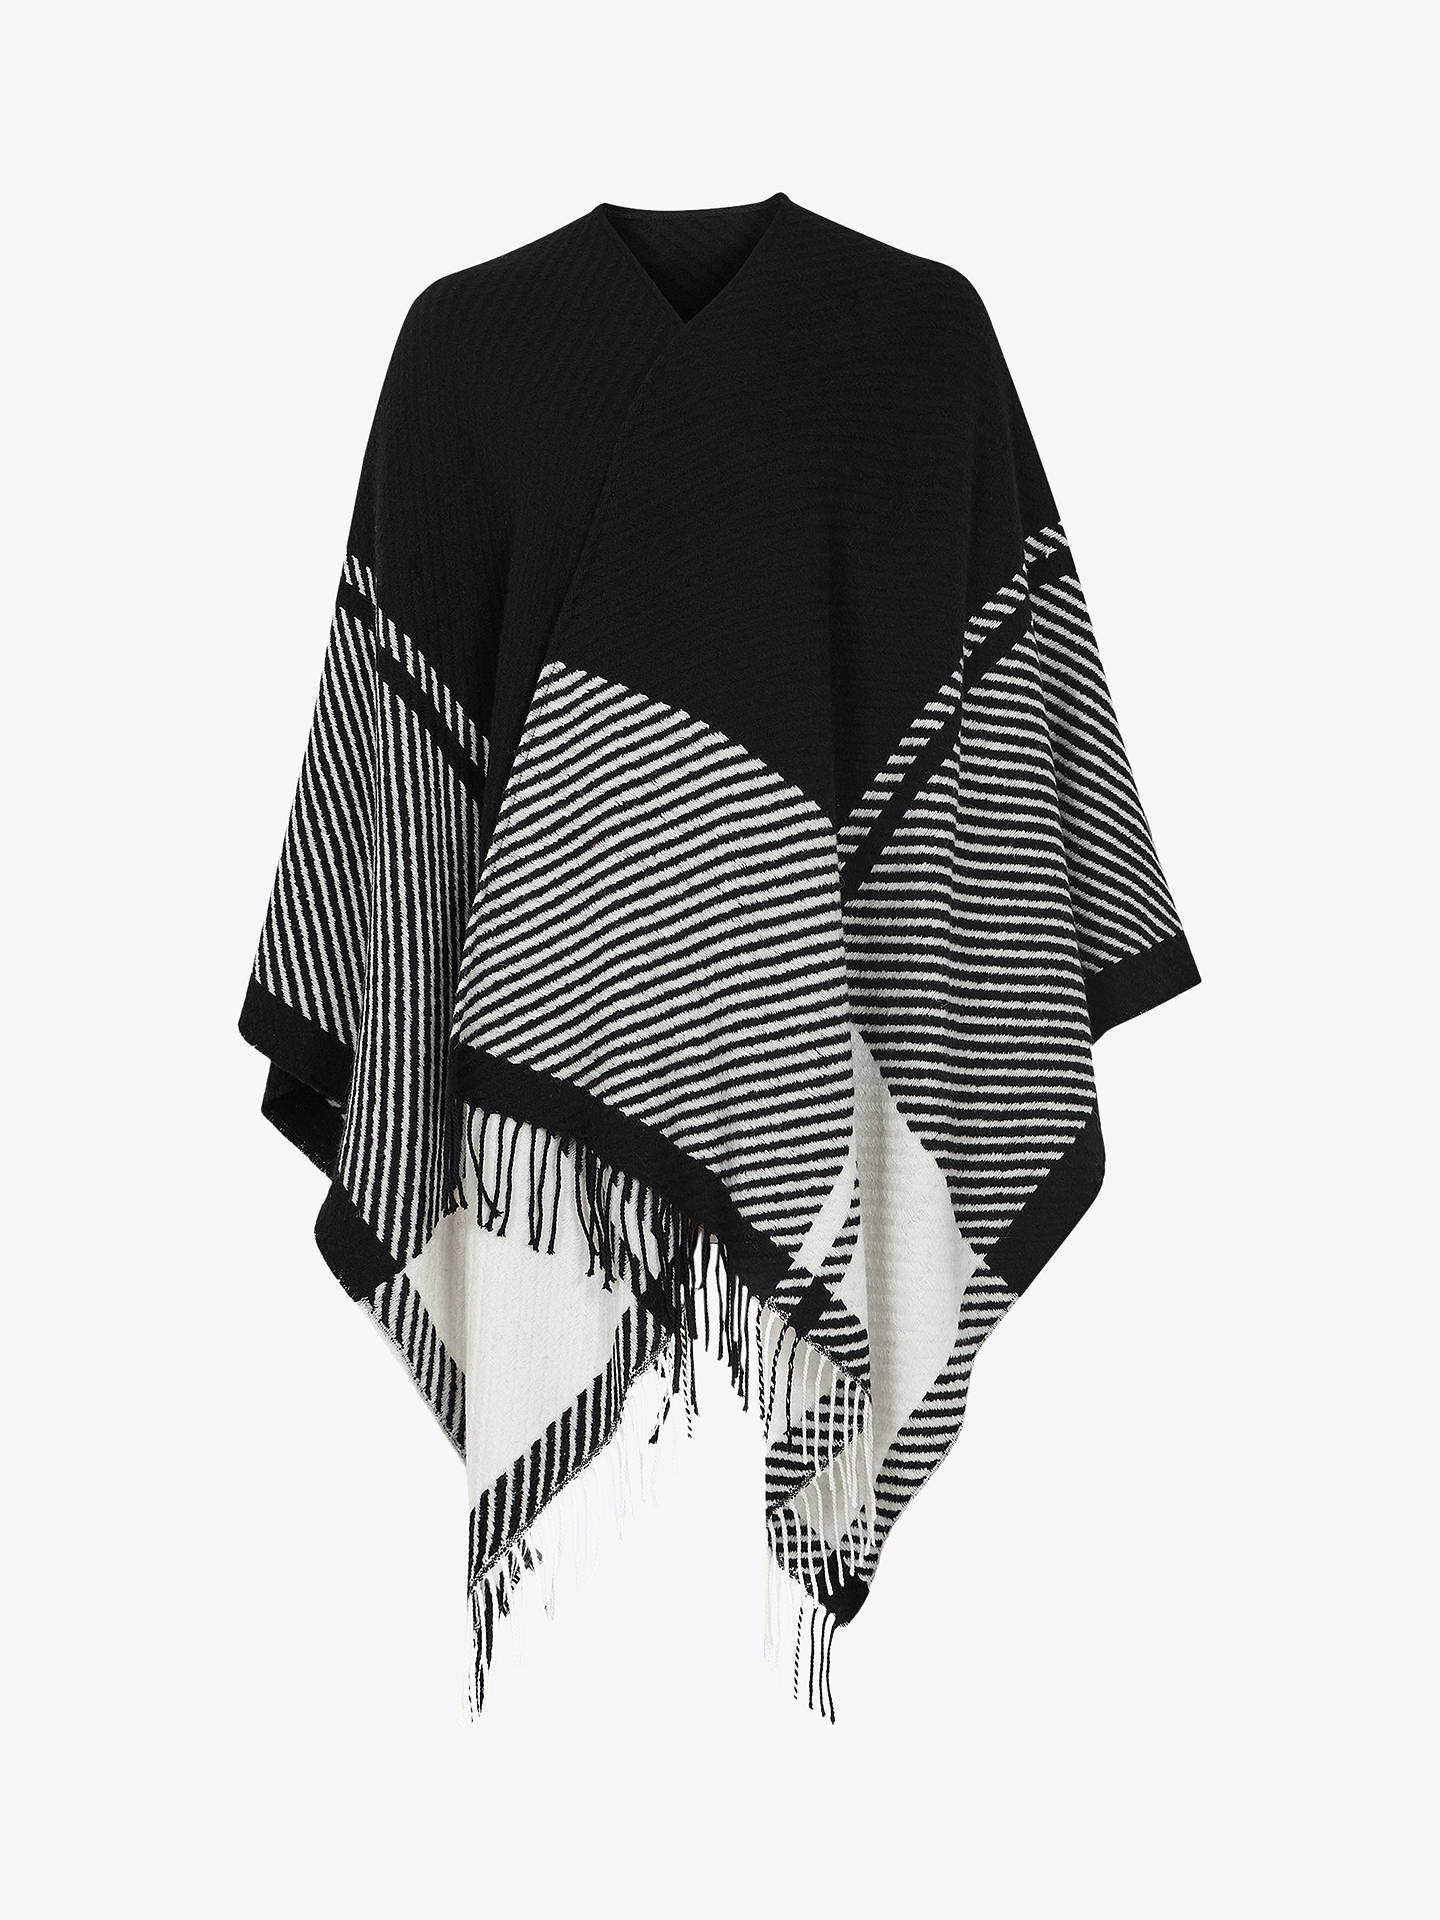 Buy Reiss Jessy Wool Check Shawl, Black/White, One Size Online at johnlewis.com